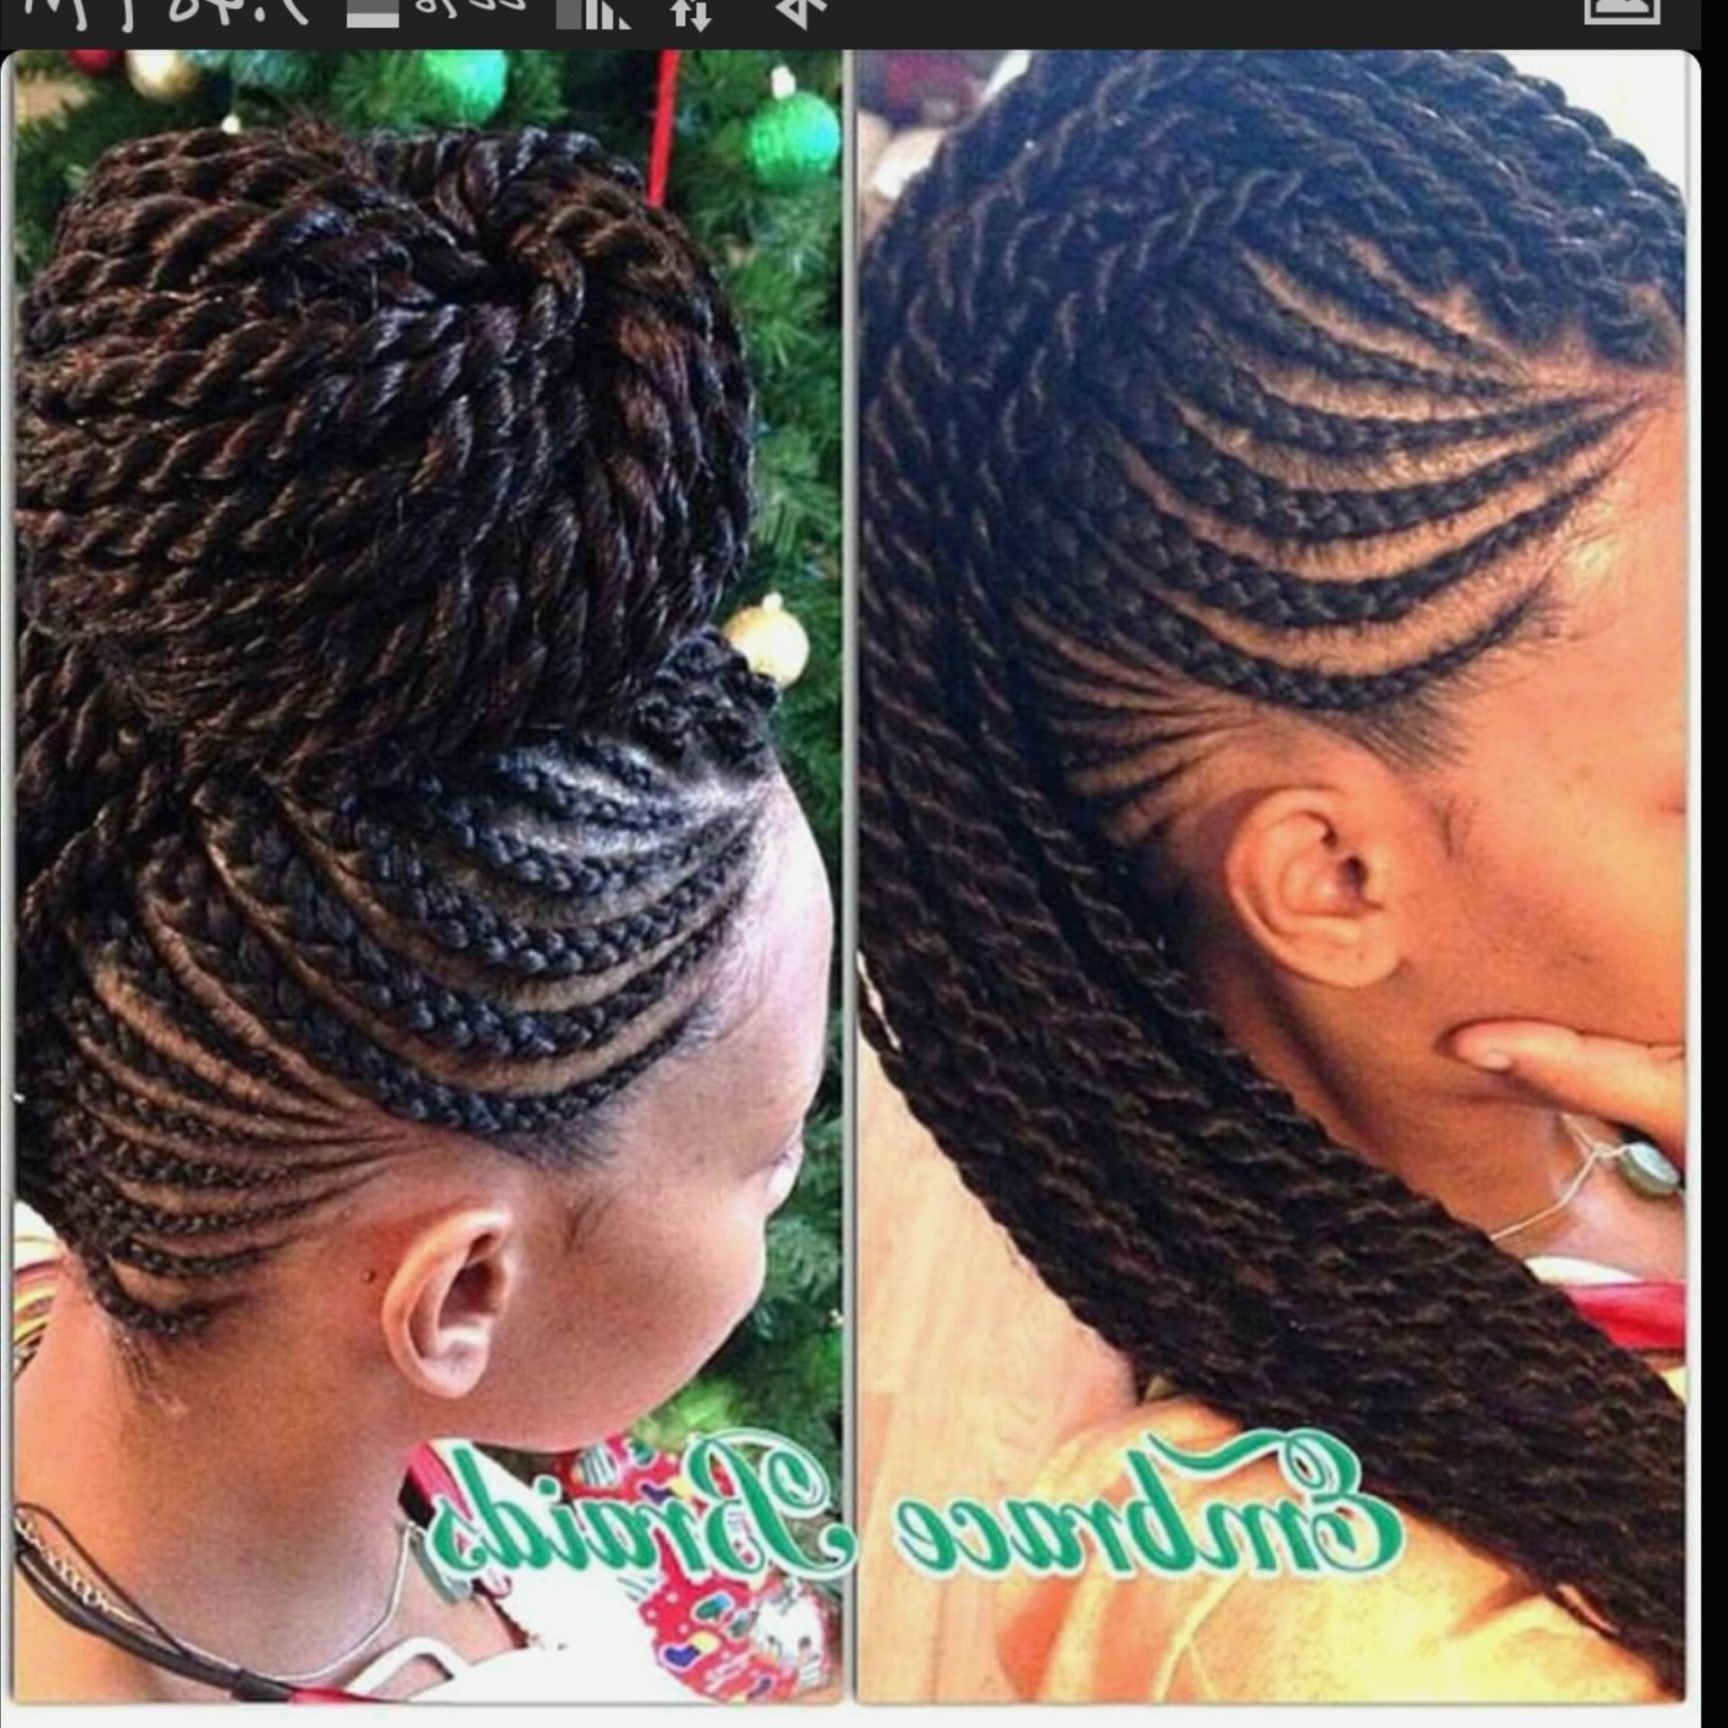 Braid Hairstyles : New Mohawks With Braids Hairstyles Tutorial With Regarding 2018 Mohawk Braided Hairstyles (View 3 of 15)